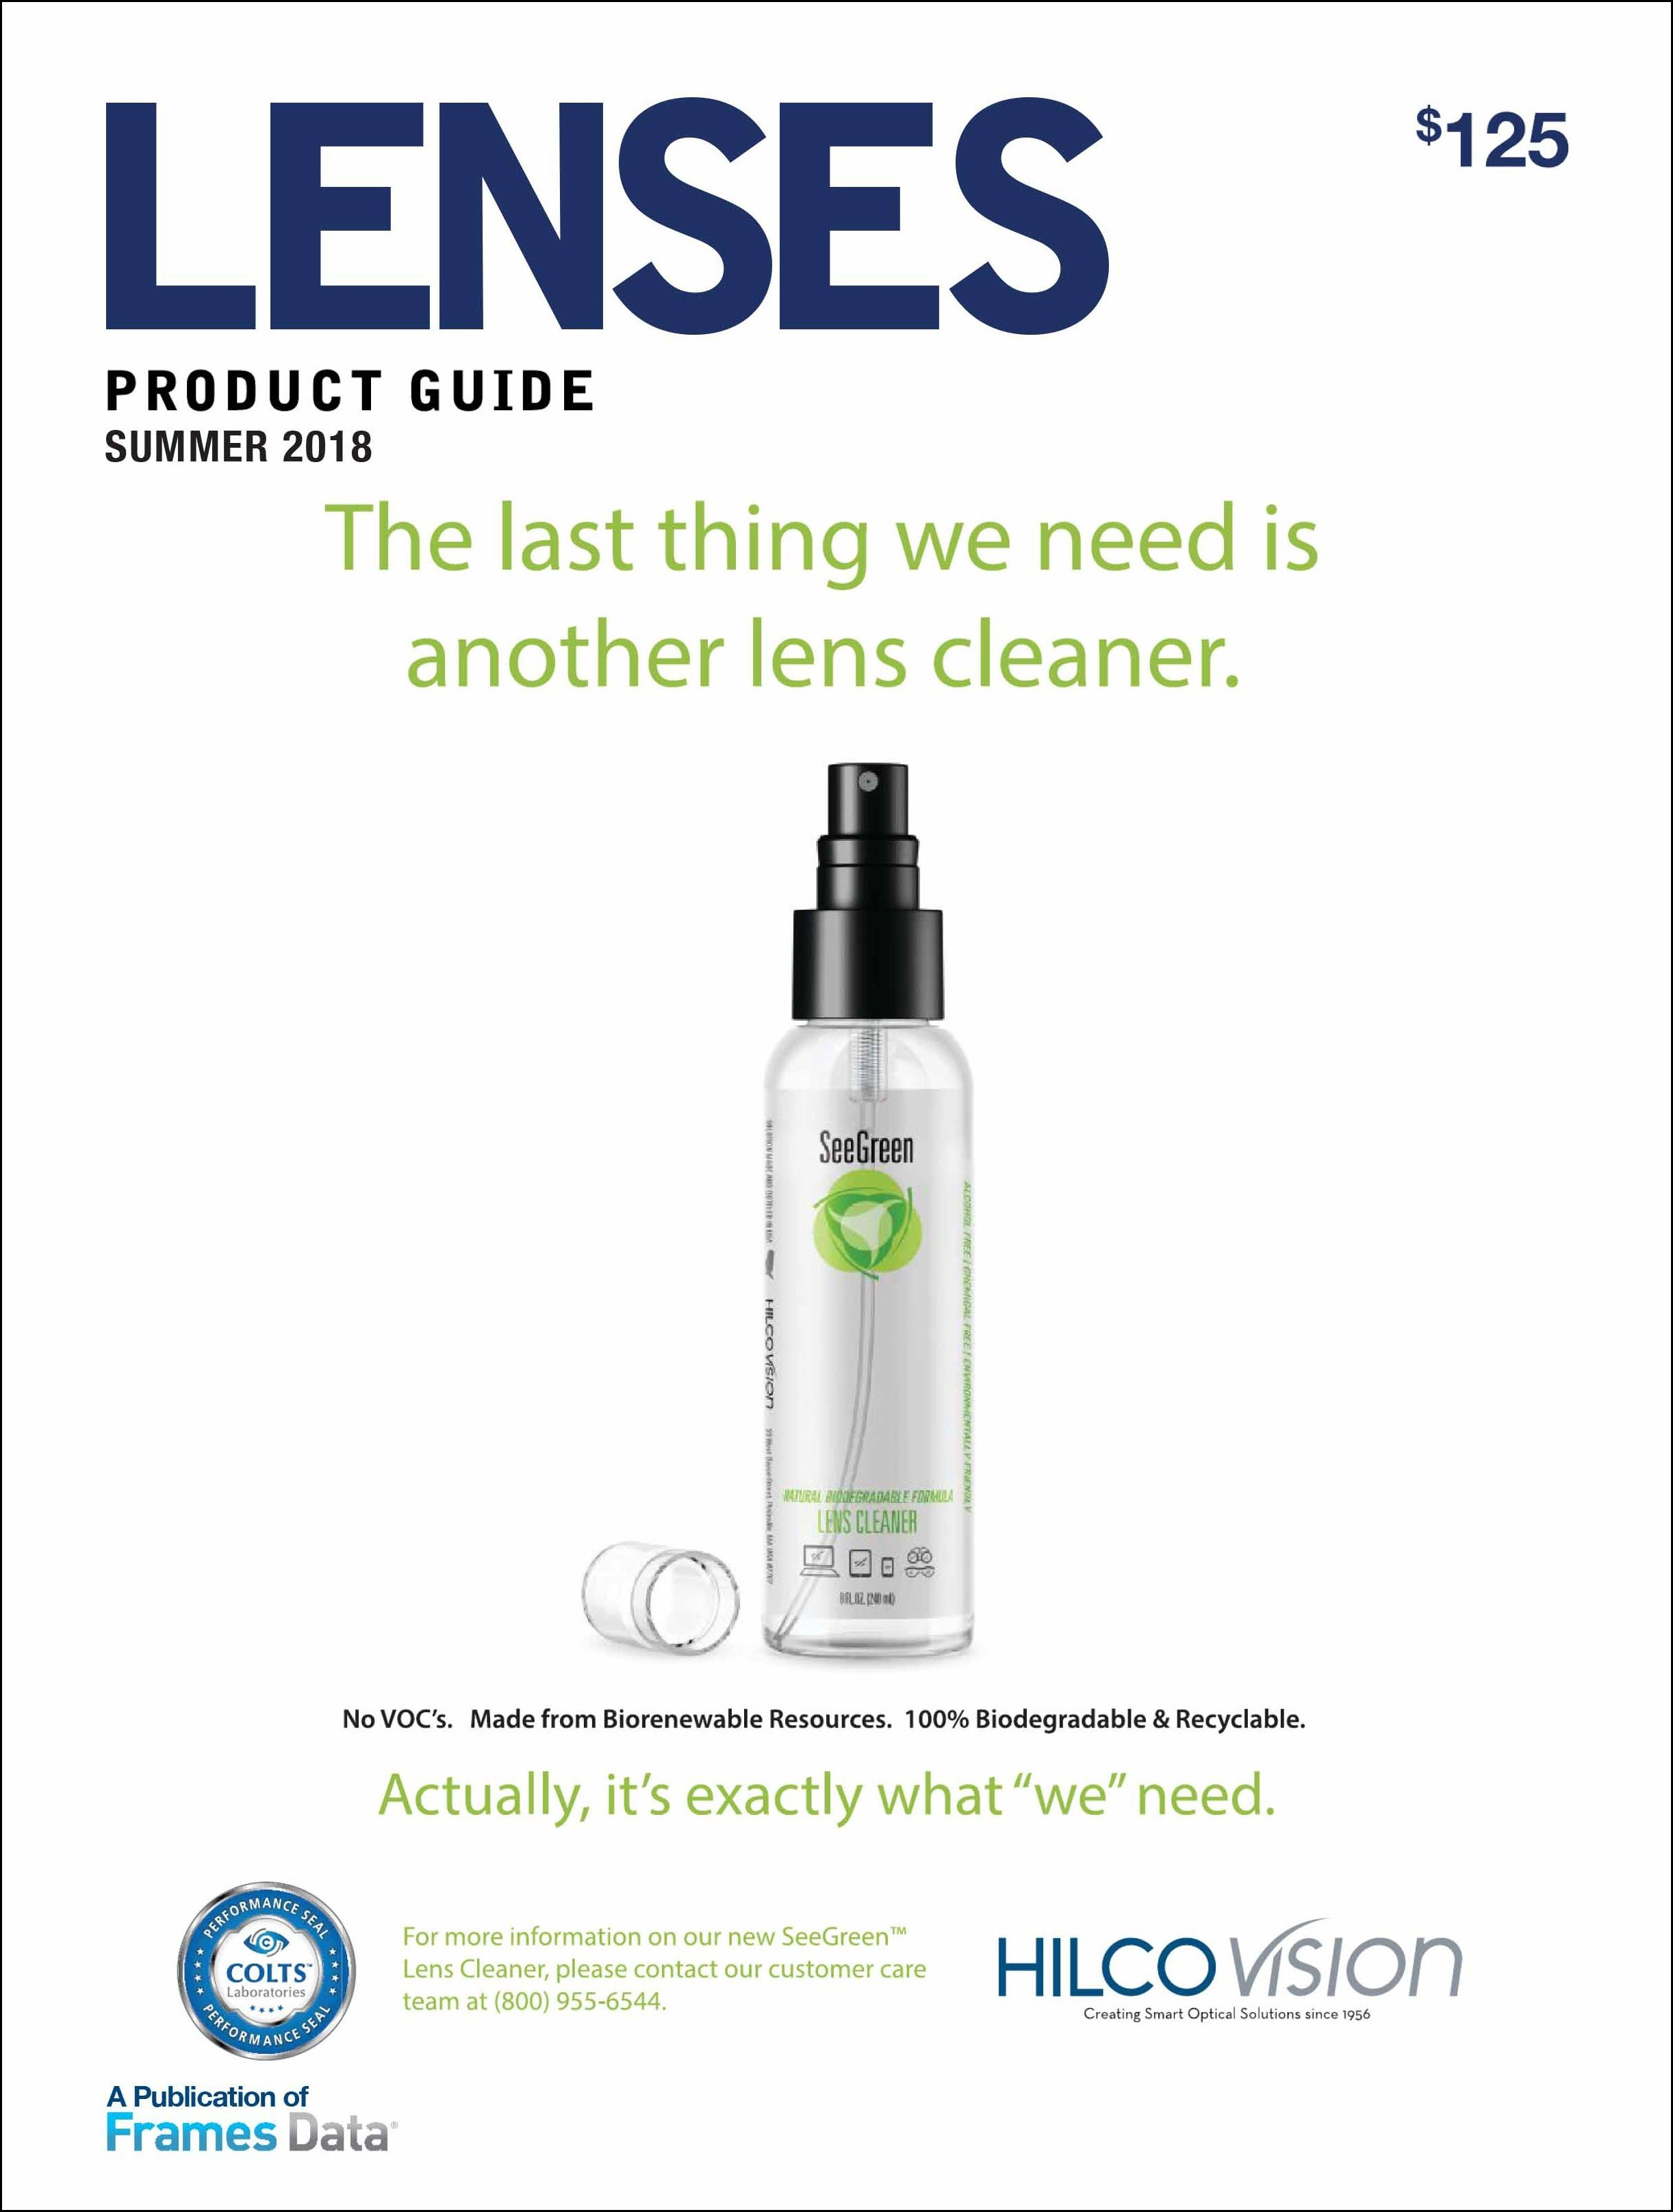 Summer Lenses Product Guide features Hilco Vision